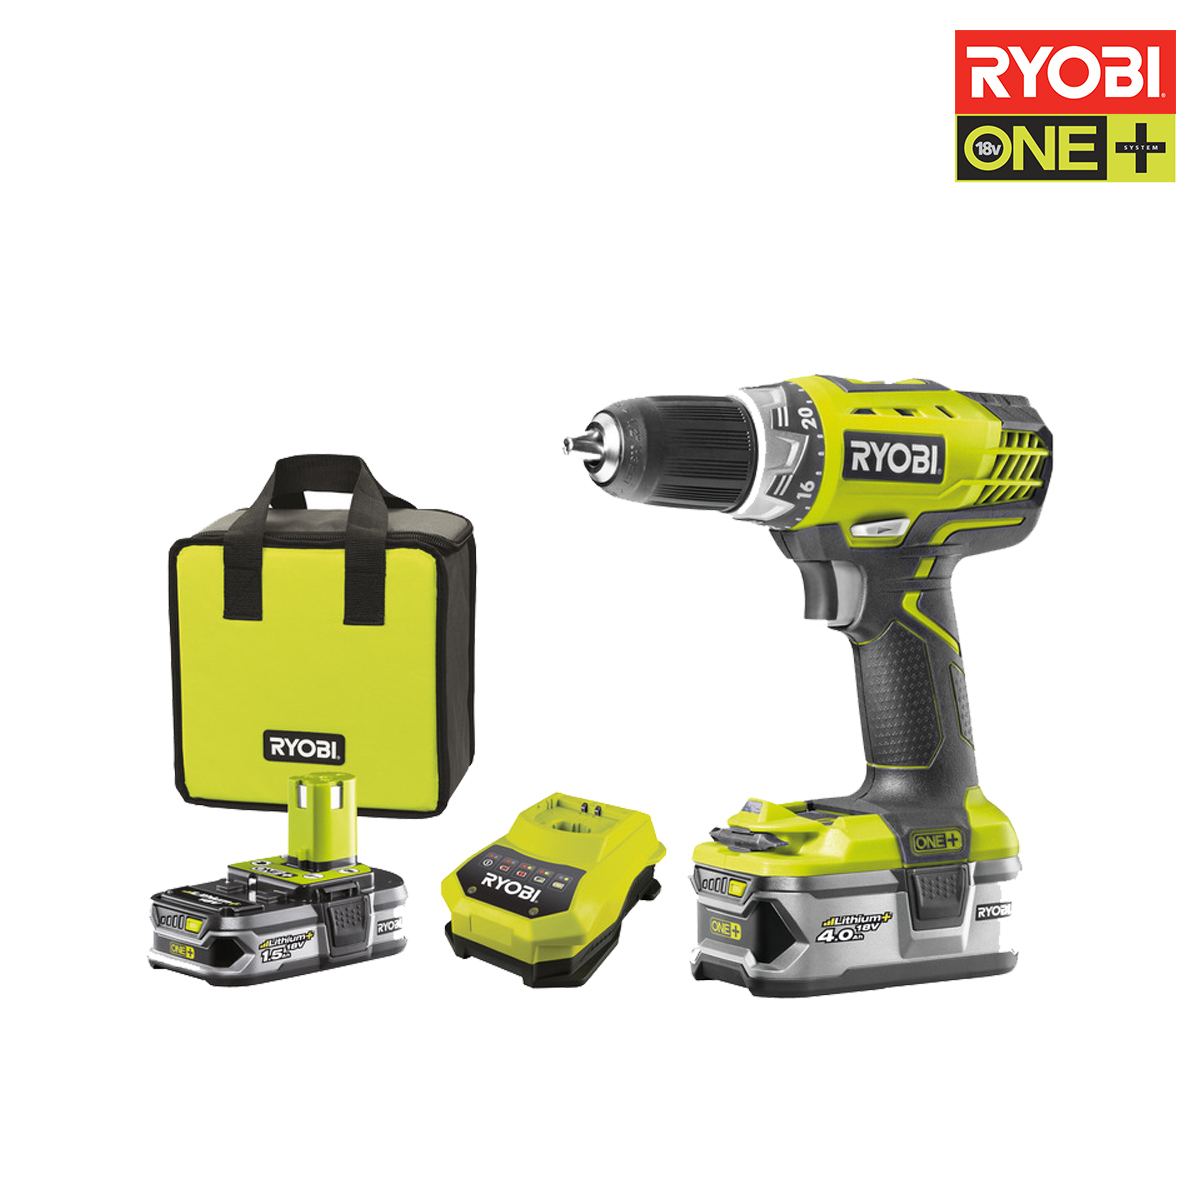 ryobi perceuse visseuse 18v oneplus 2 batteries. Black Bedroom Furniture Sets. Home Design Ideas